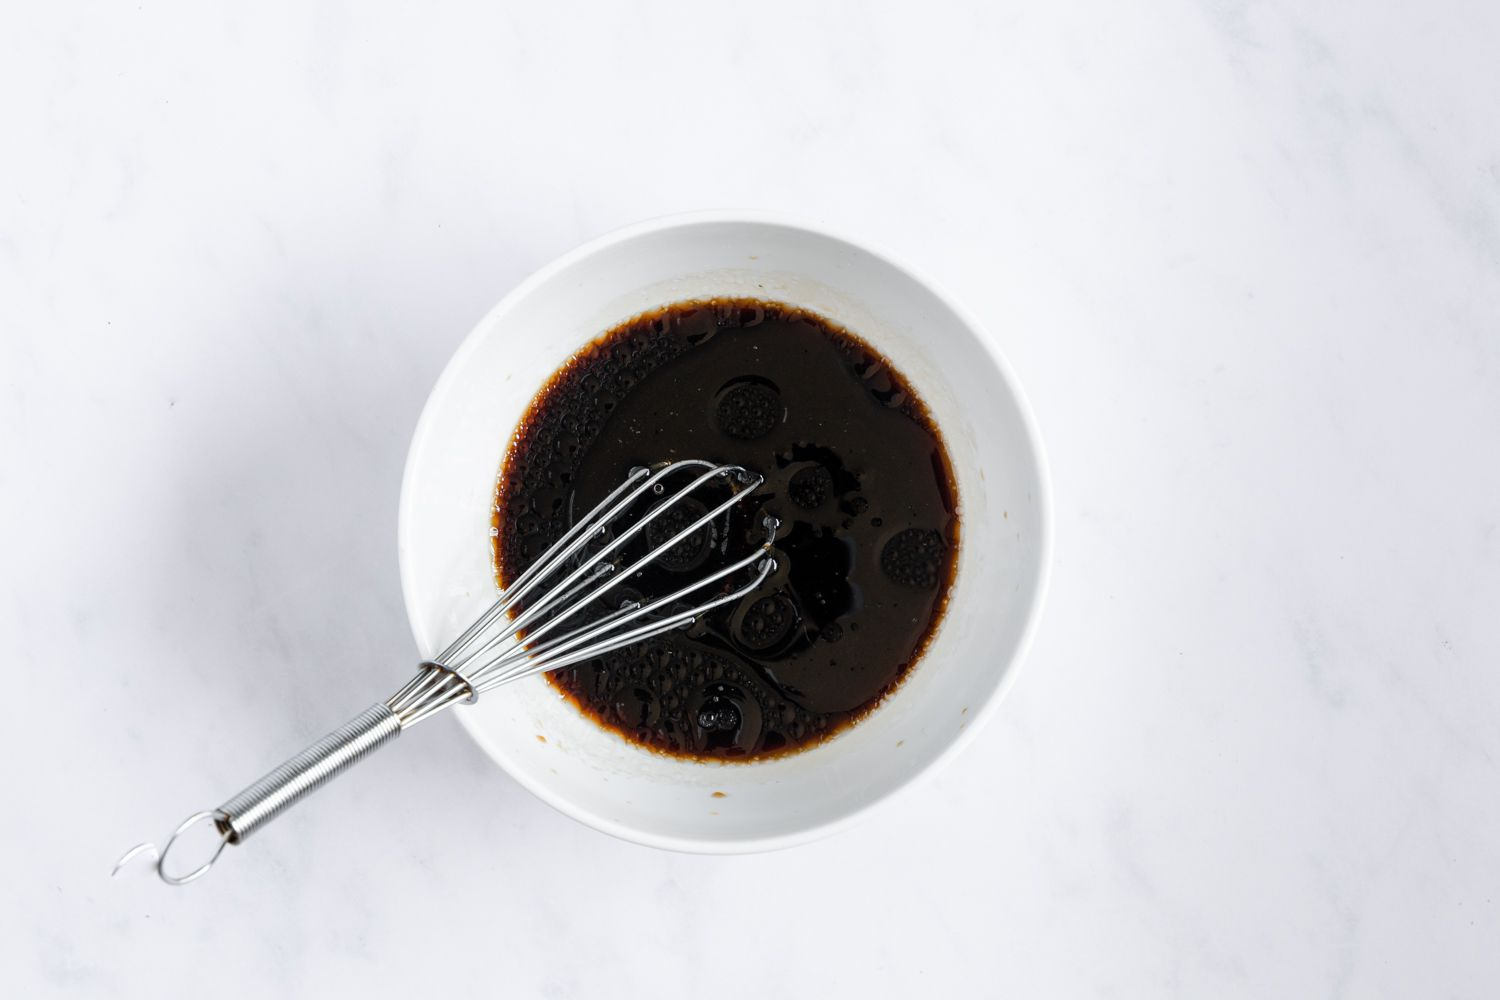 whisk together the red wine vinegar, soy sauces, and Asian sesame oil in a bowl